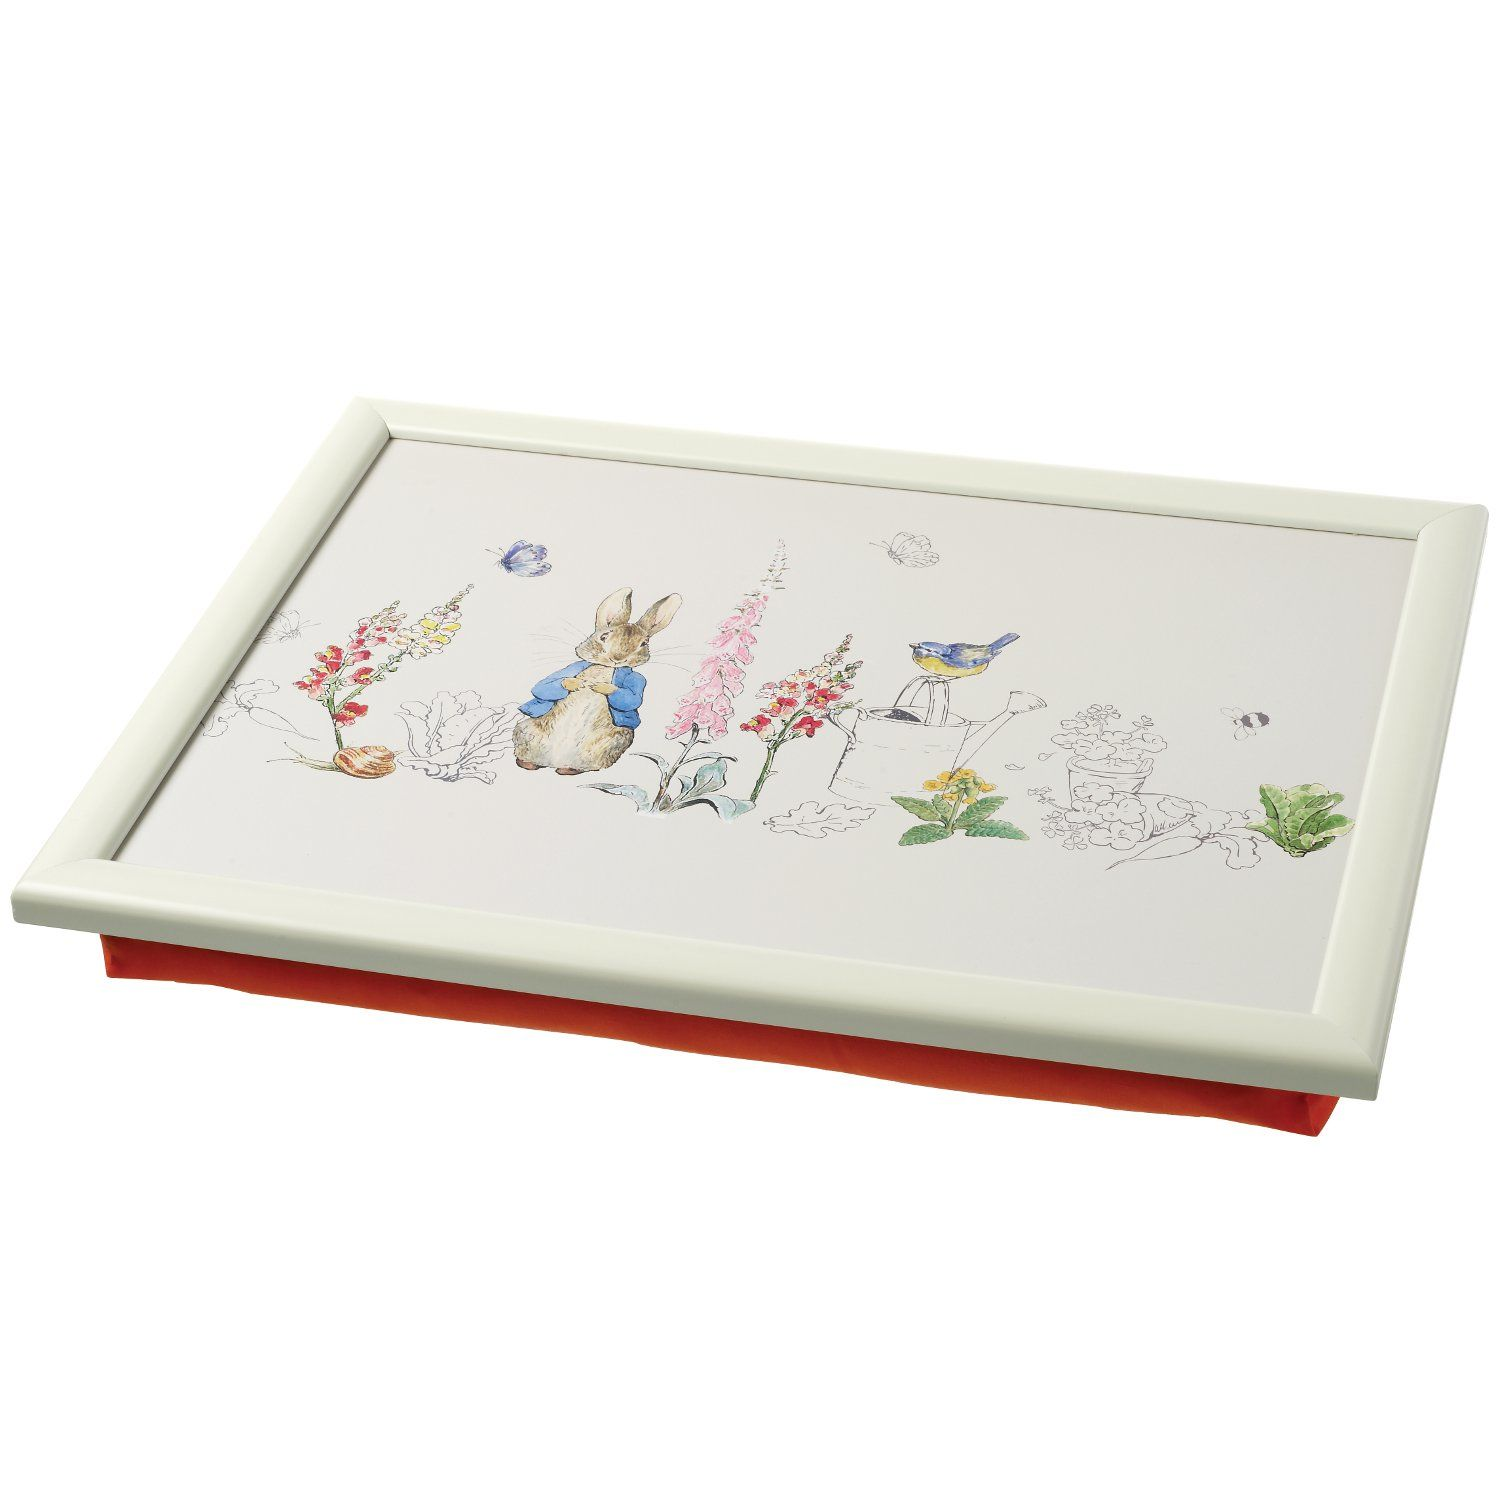 Peter Rabbit Peter Rabbit Classic Lap Tray